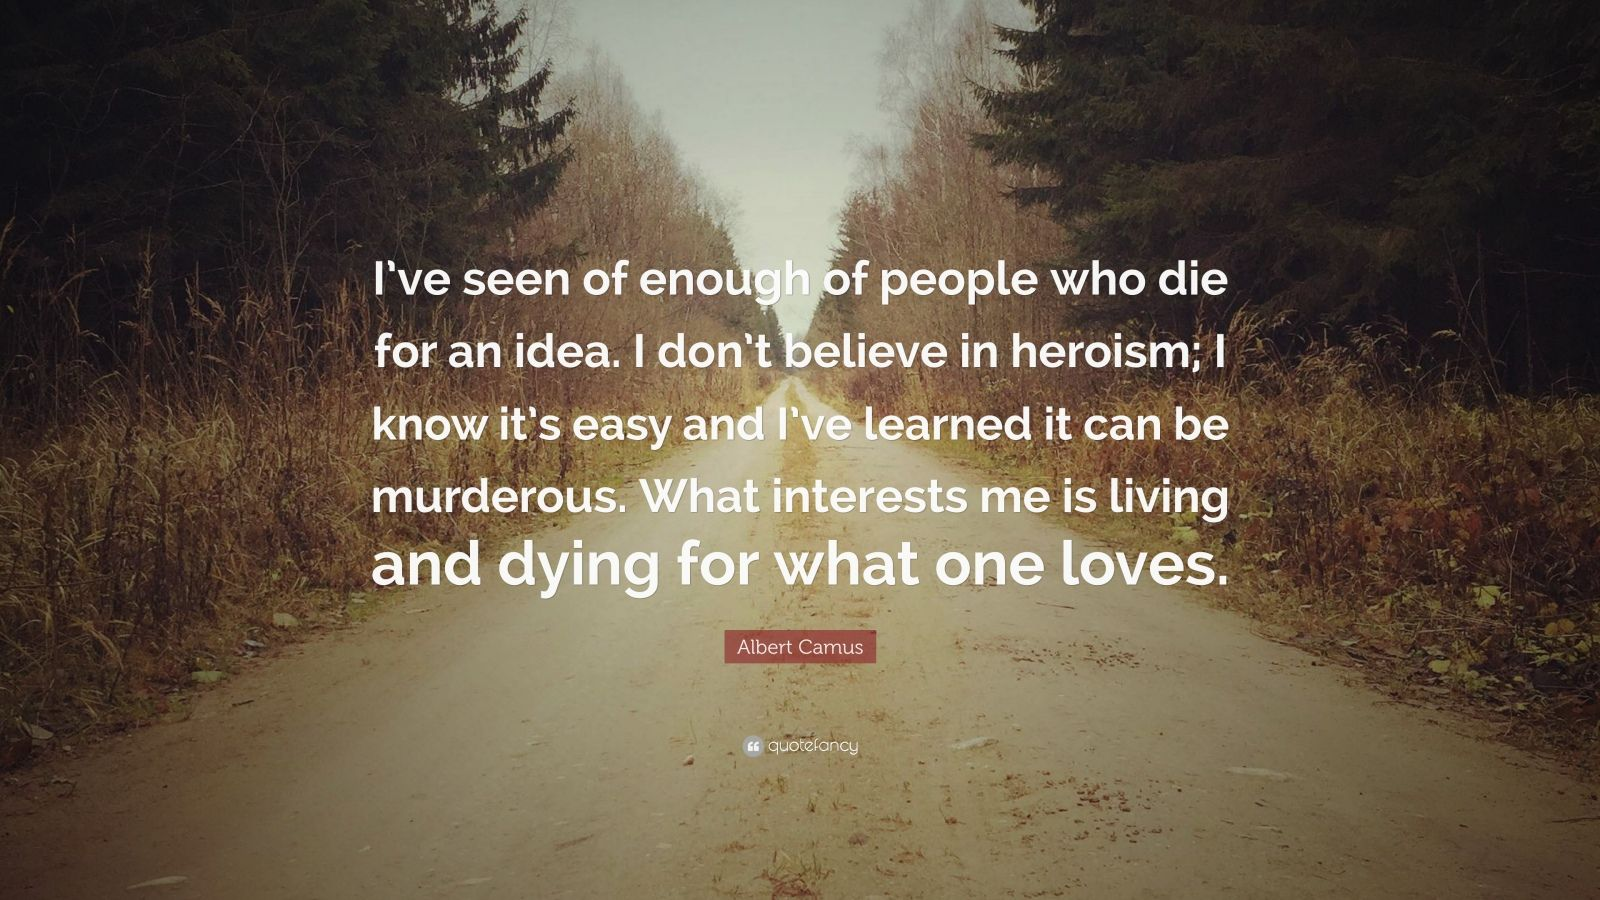 "Albert Camus Quote: ""I've seen of enough of people who die for an idea. I don't believe in heroism; I know it's easy and I've learned it can be murderous. What interests me is living and dying for what one loves."""